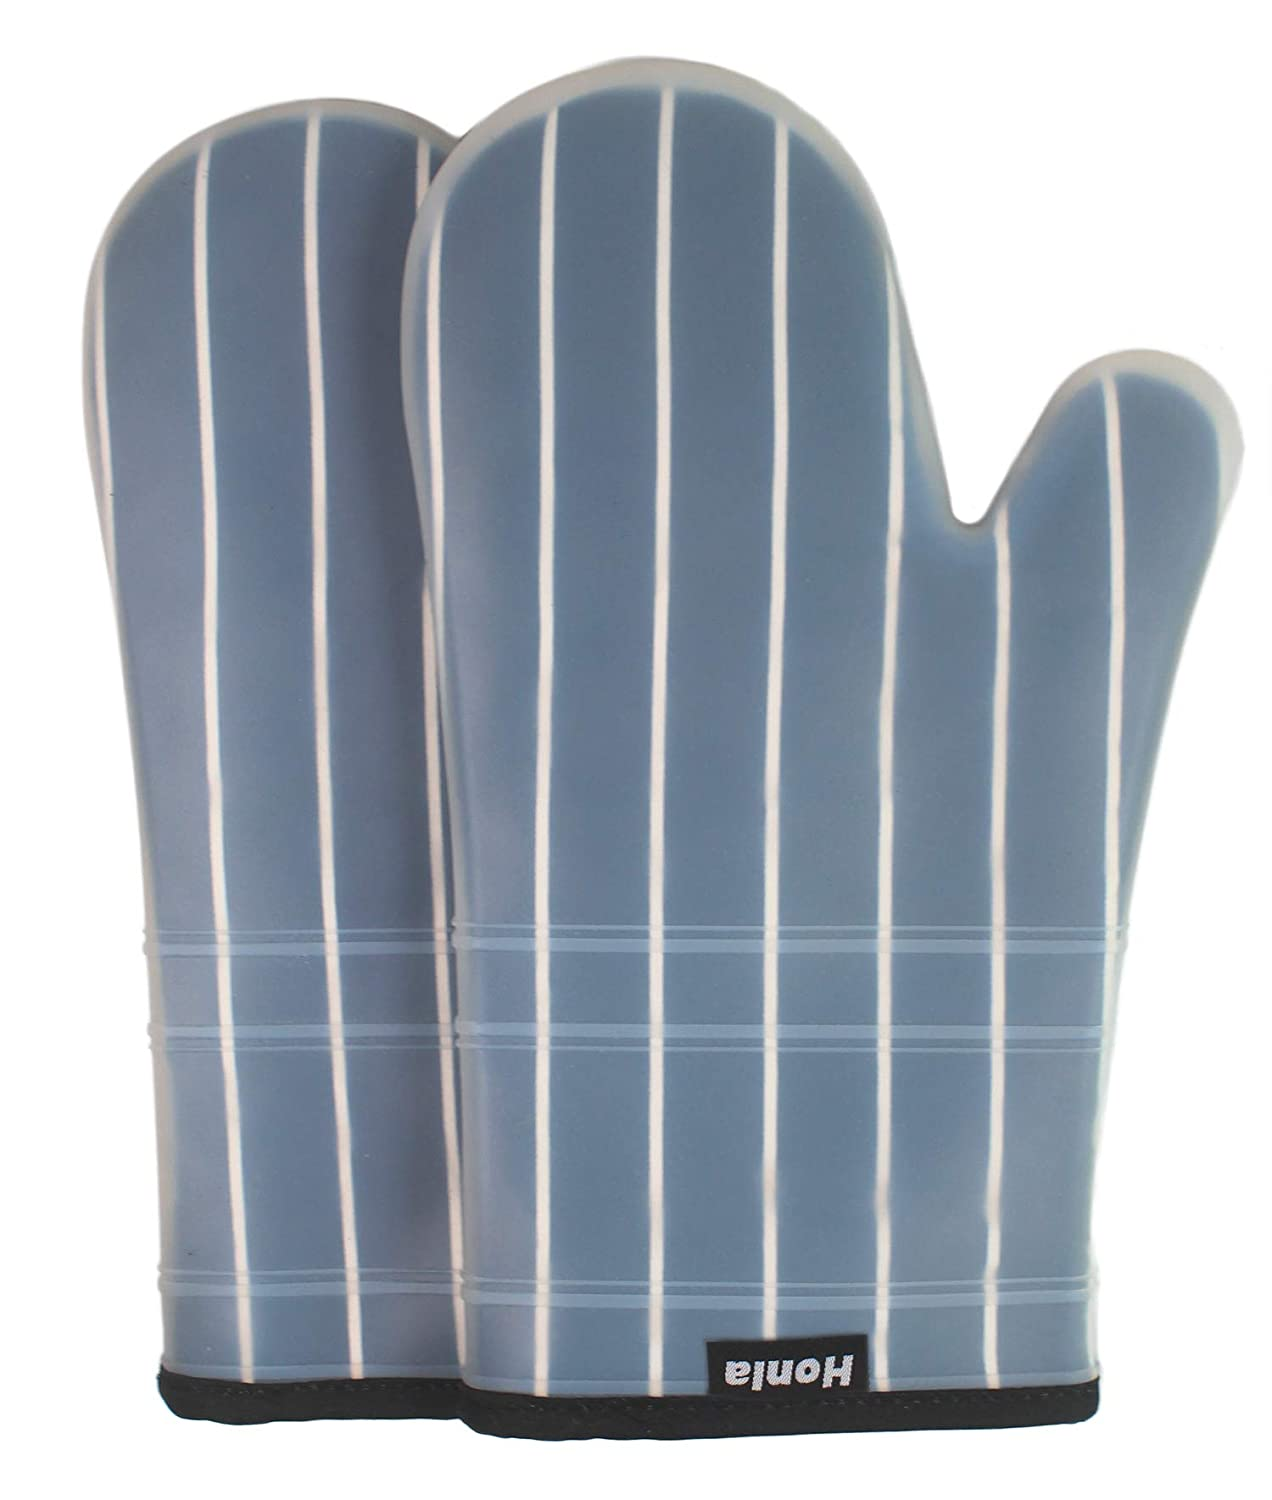 Honla Silicone Oven Mitts with Stripe Fabric and Terry Cloths Lining,Heat Resistant to 500 F,1 Pair of Kitchen Oven Gloves for Cooking,Baking,Grilling,Barbecue Potholders,Black